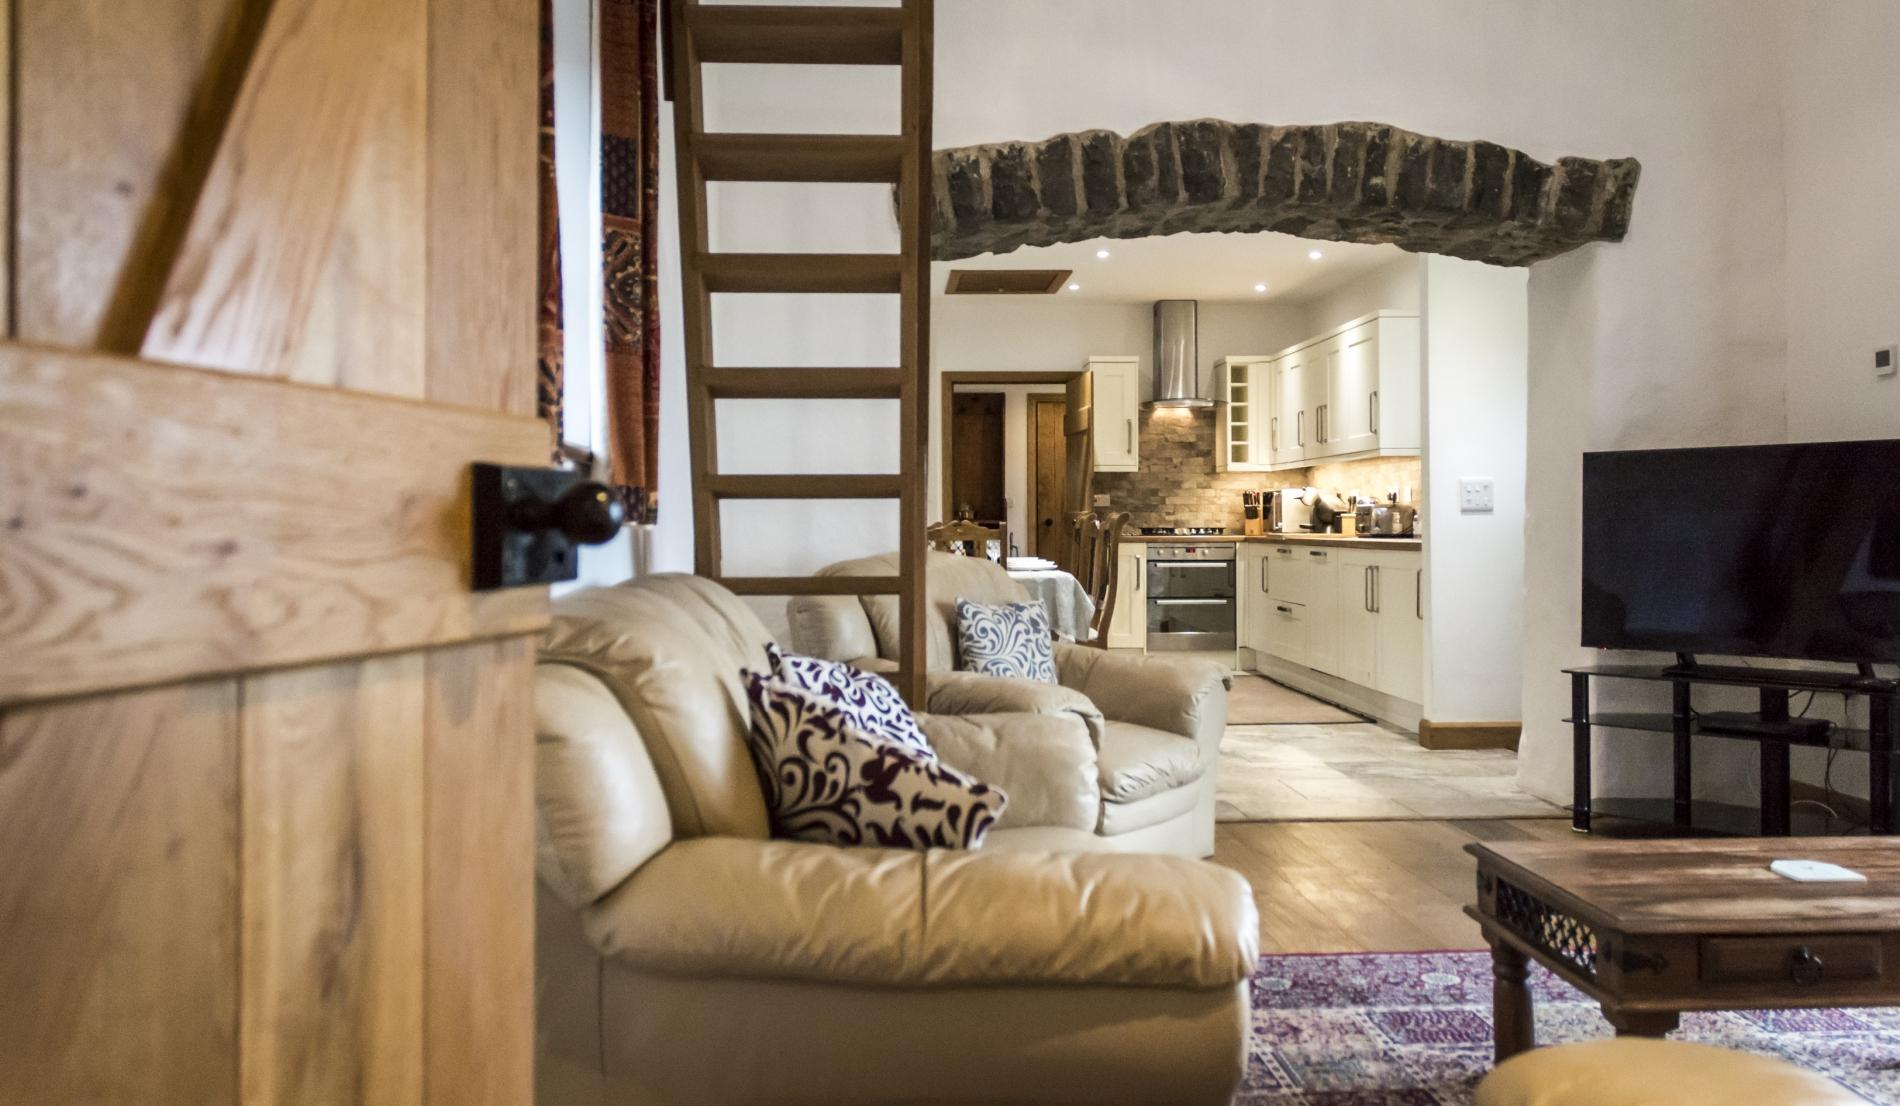 Orchard Cottage - Luxurious Barn Conversion - Beavers Hill 2